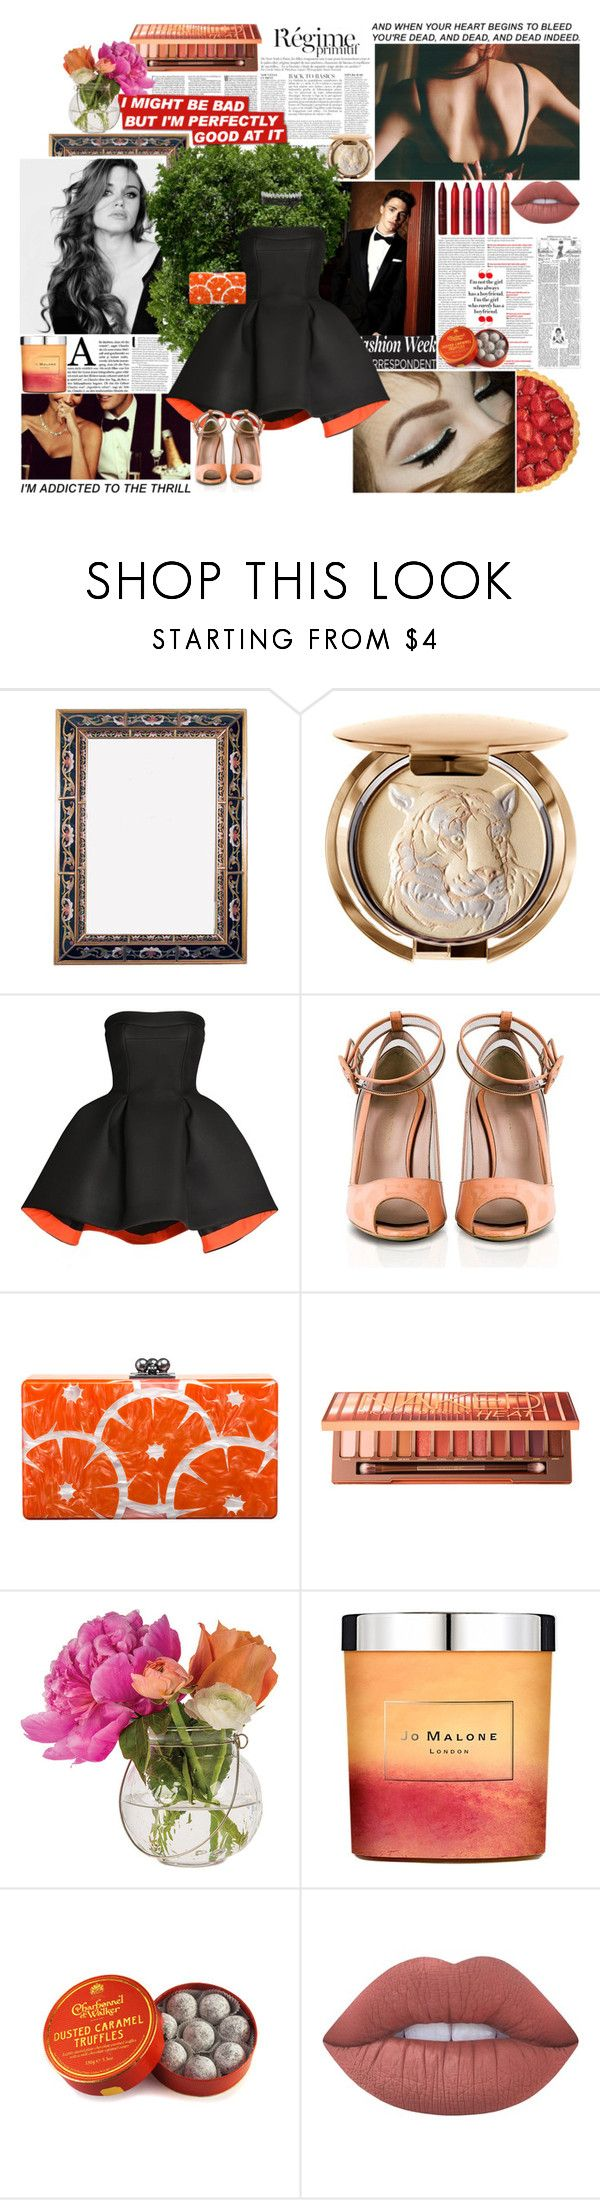 """you don't tell the truth, you like playing games"" by cataalix ❤ liked on Polyvore featuring Anja, J. Peterman, Chantecaille, KEEP ME, Parlor, Konstantina Tzovolou, Edie Parker, Urban Decay, Cultural Intrigue and Jo Malone"